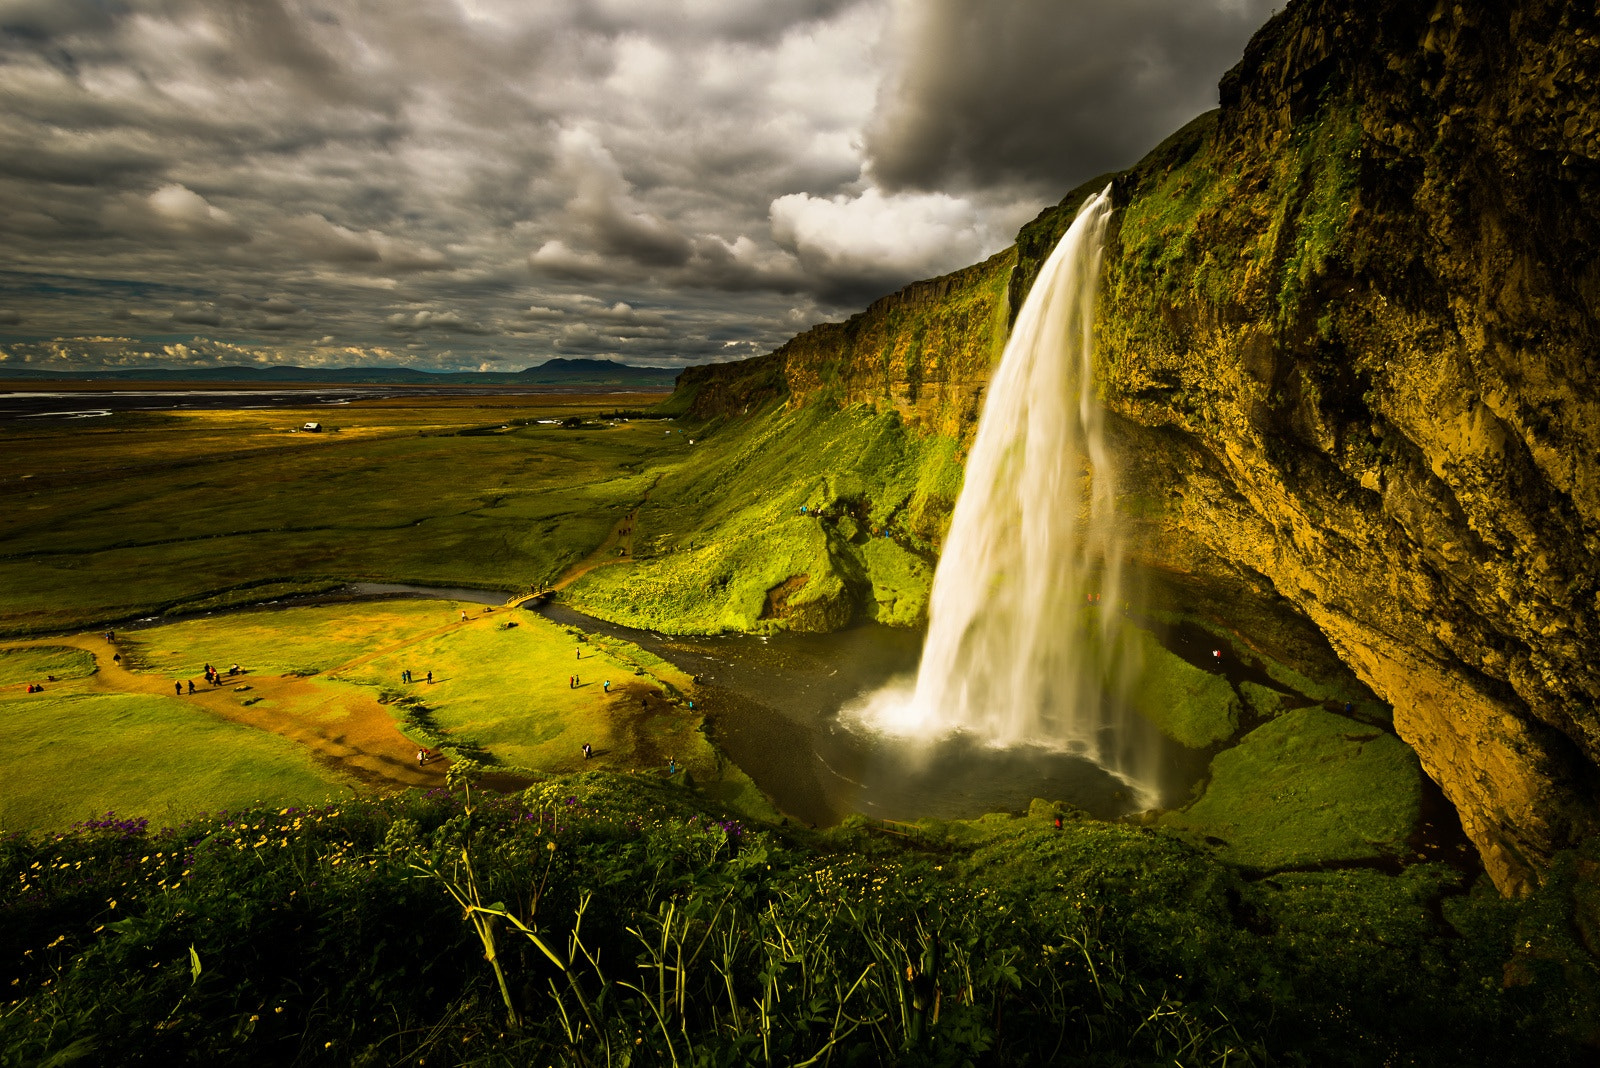 Photograph Seljalandsfoss Waterfall, Iceland by Howard Ignatius on 500px